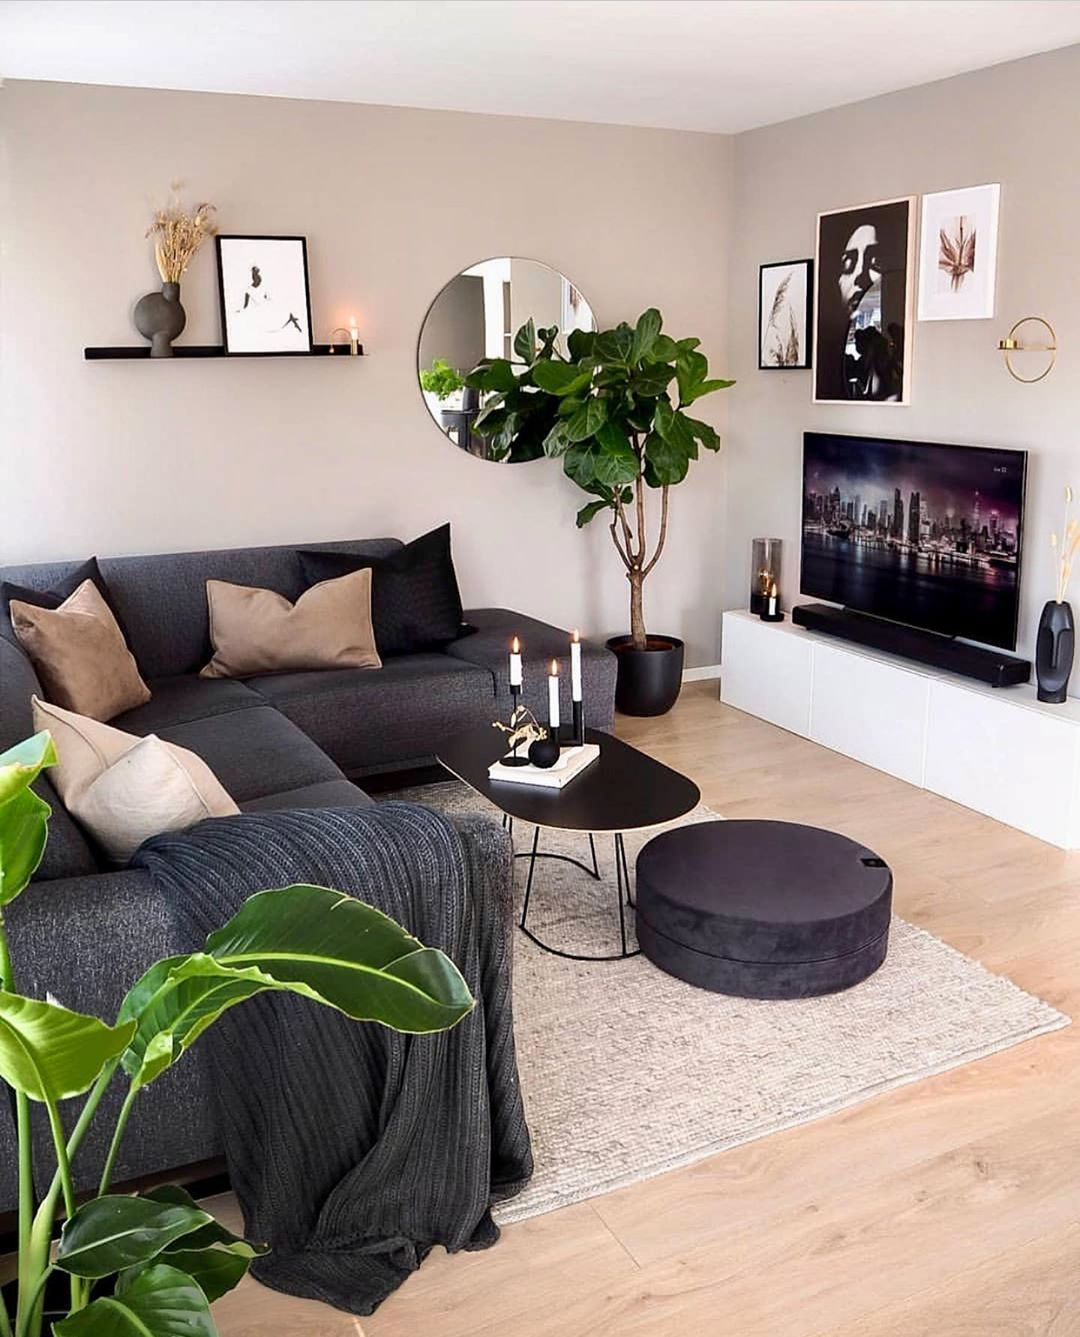 201 Decorating Ideas In Living Room 2021 In 2020 Living